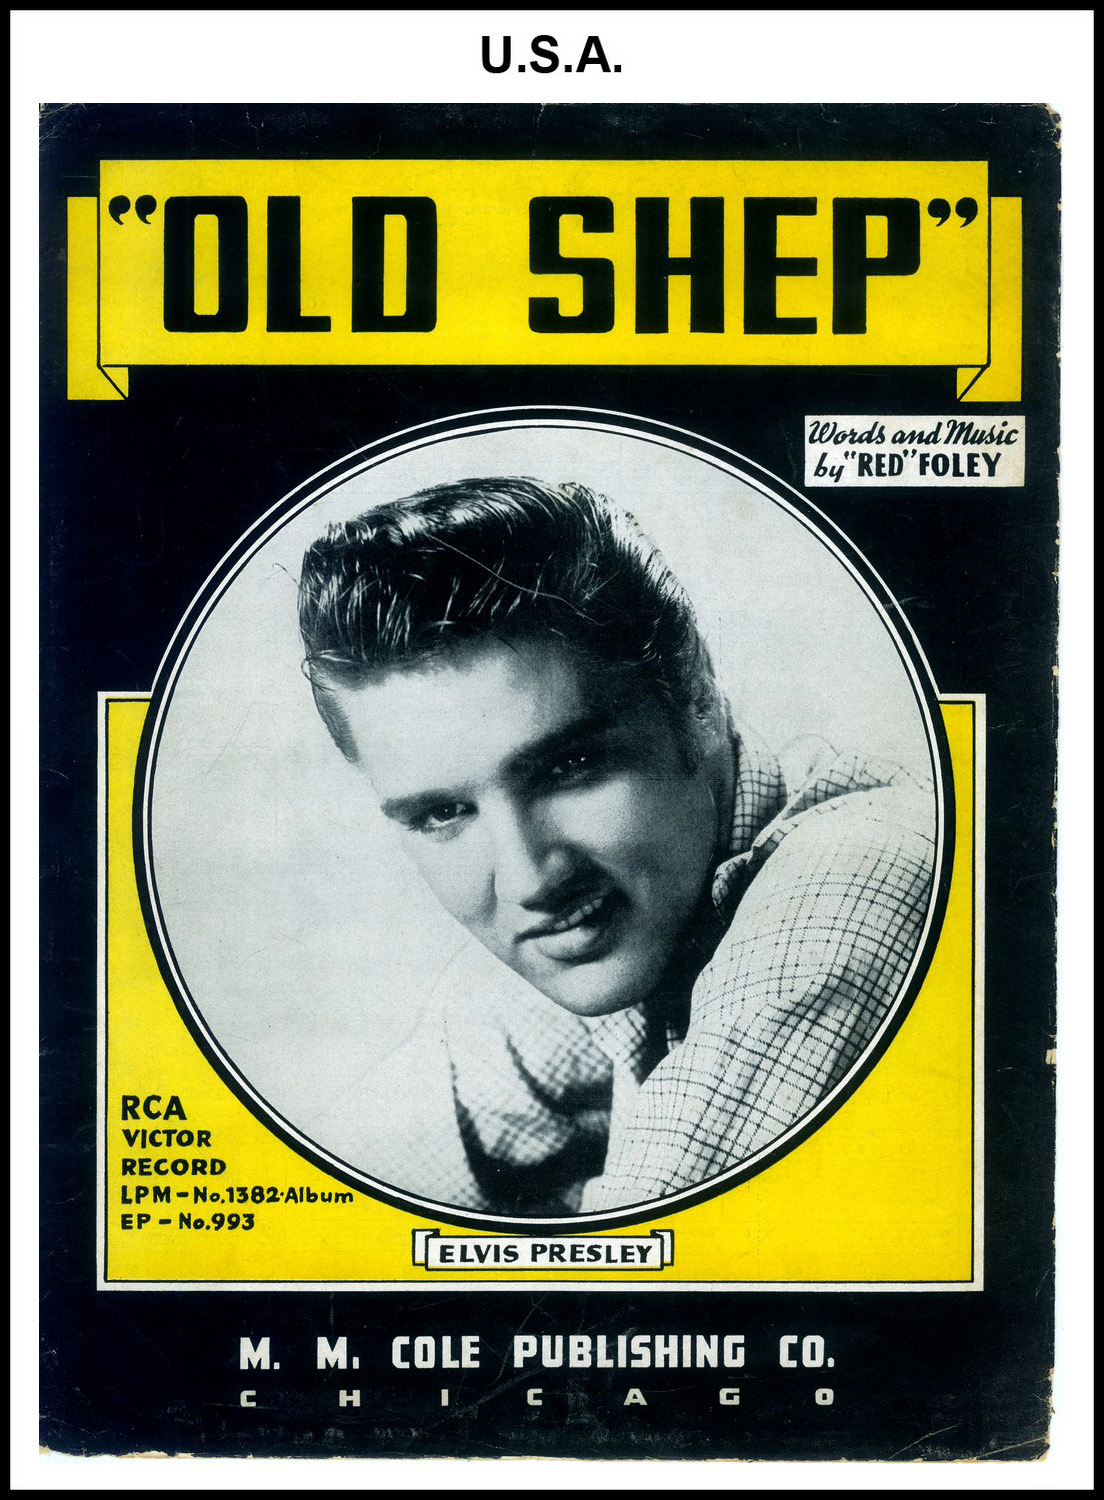 1956 - Old Shep (USA not priced) (JUAN LUIS COLLECTION)